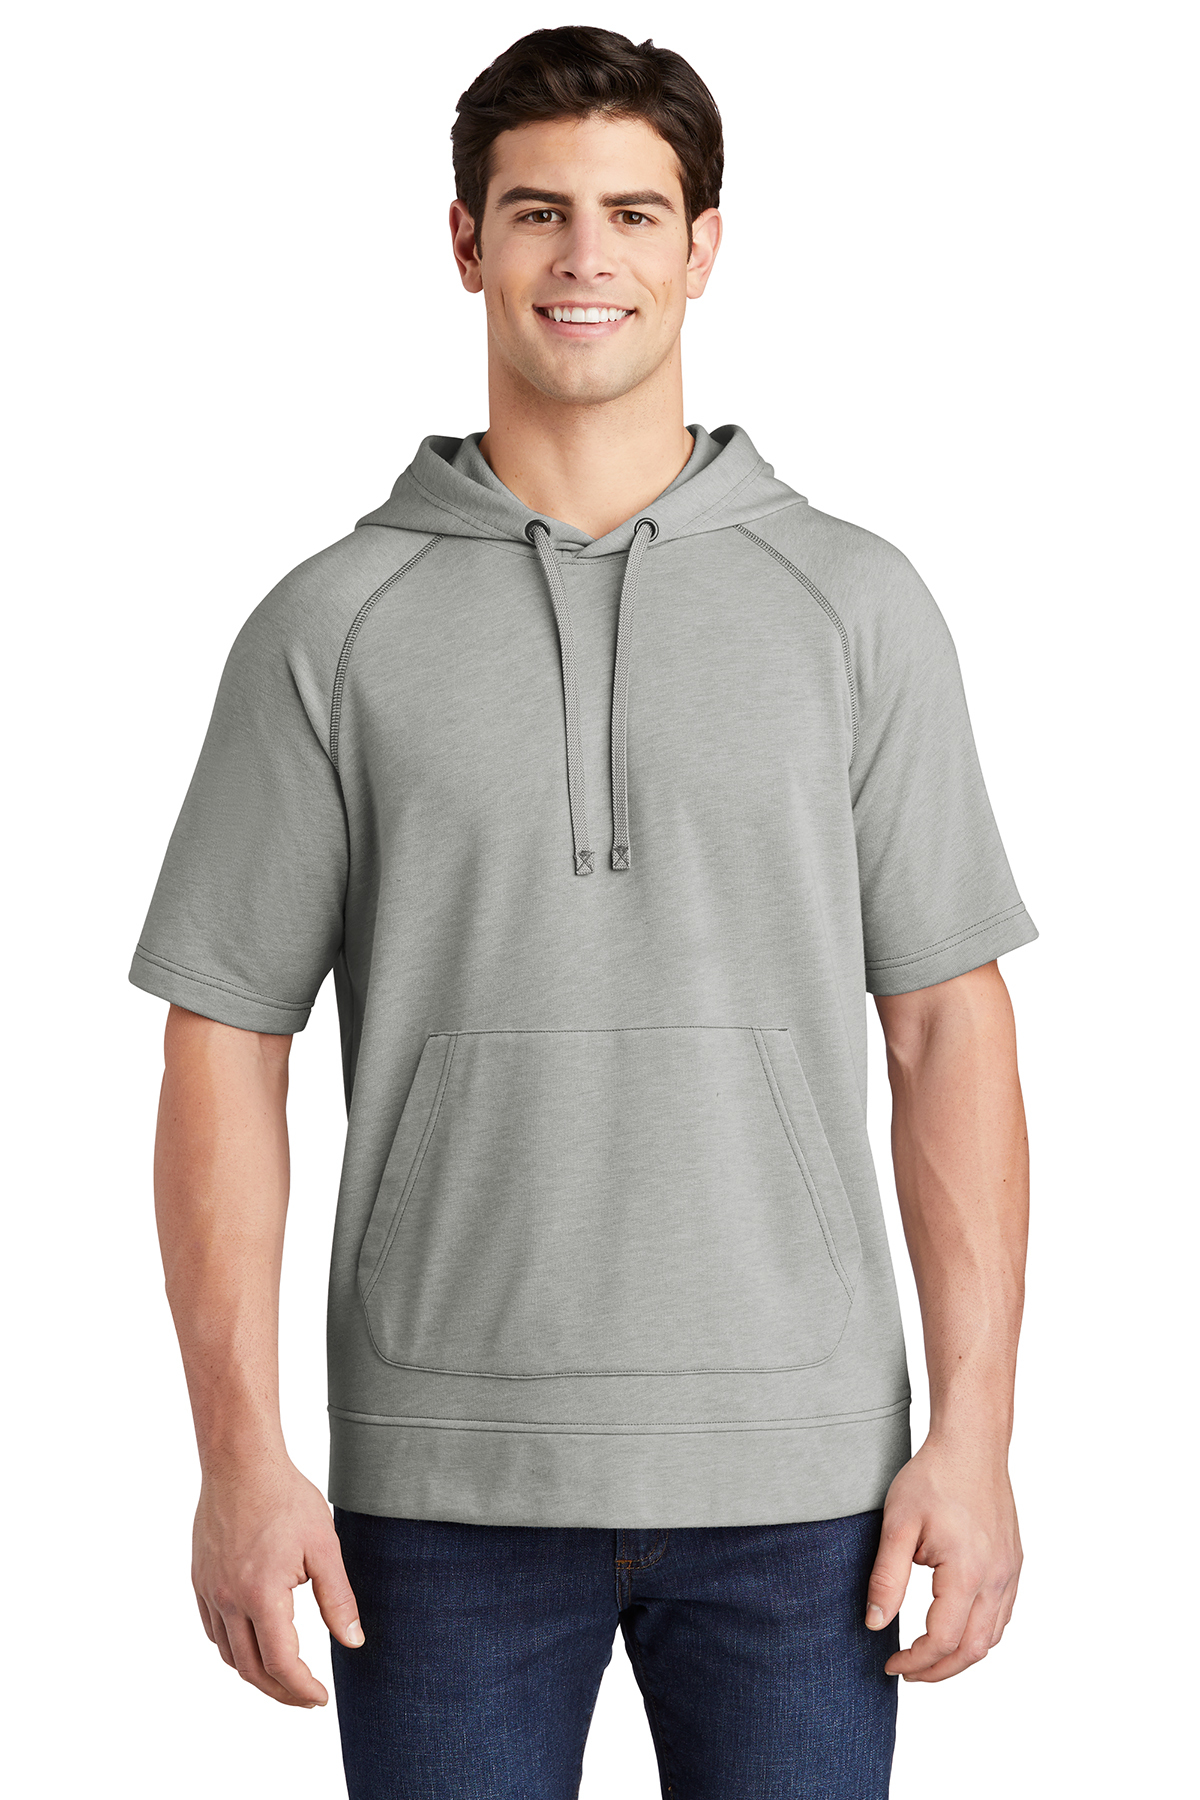 Sport-Tek ST297 - PosiCharge Tri-Blend Wicking Fleece Short Sleeve Hooded Pullover